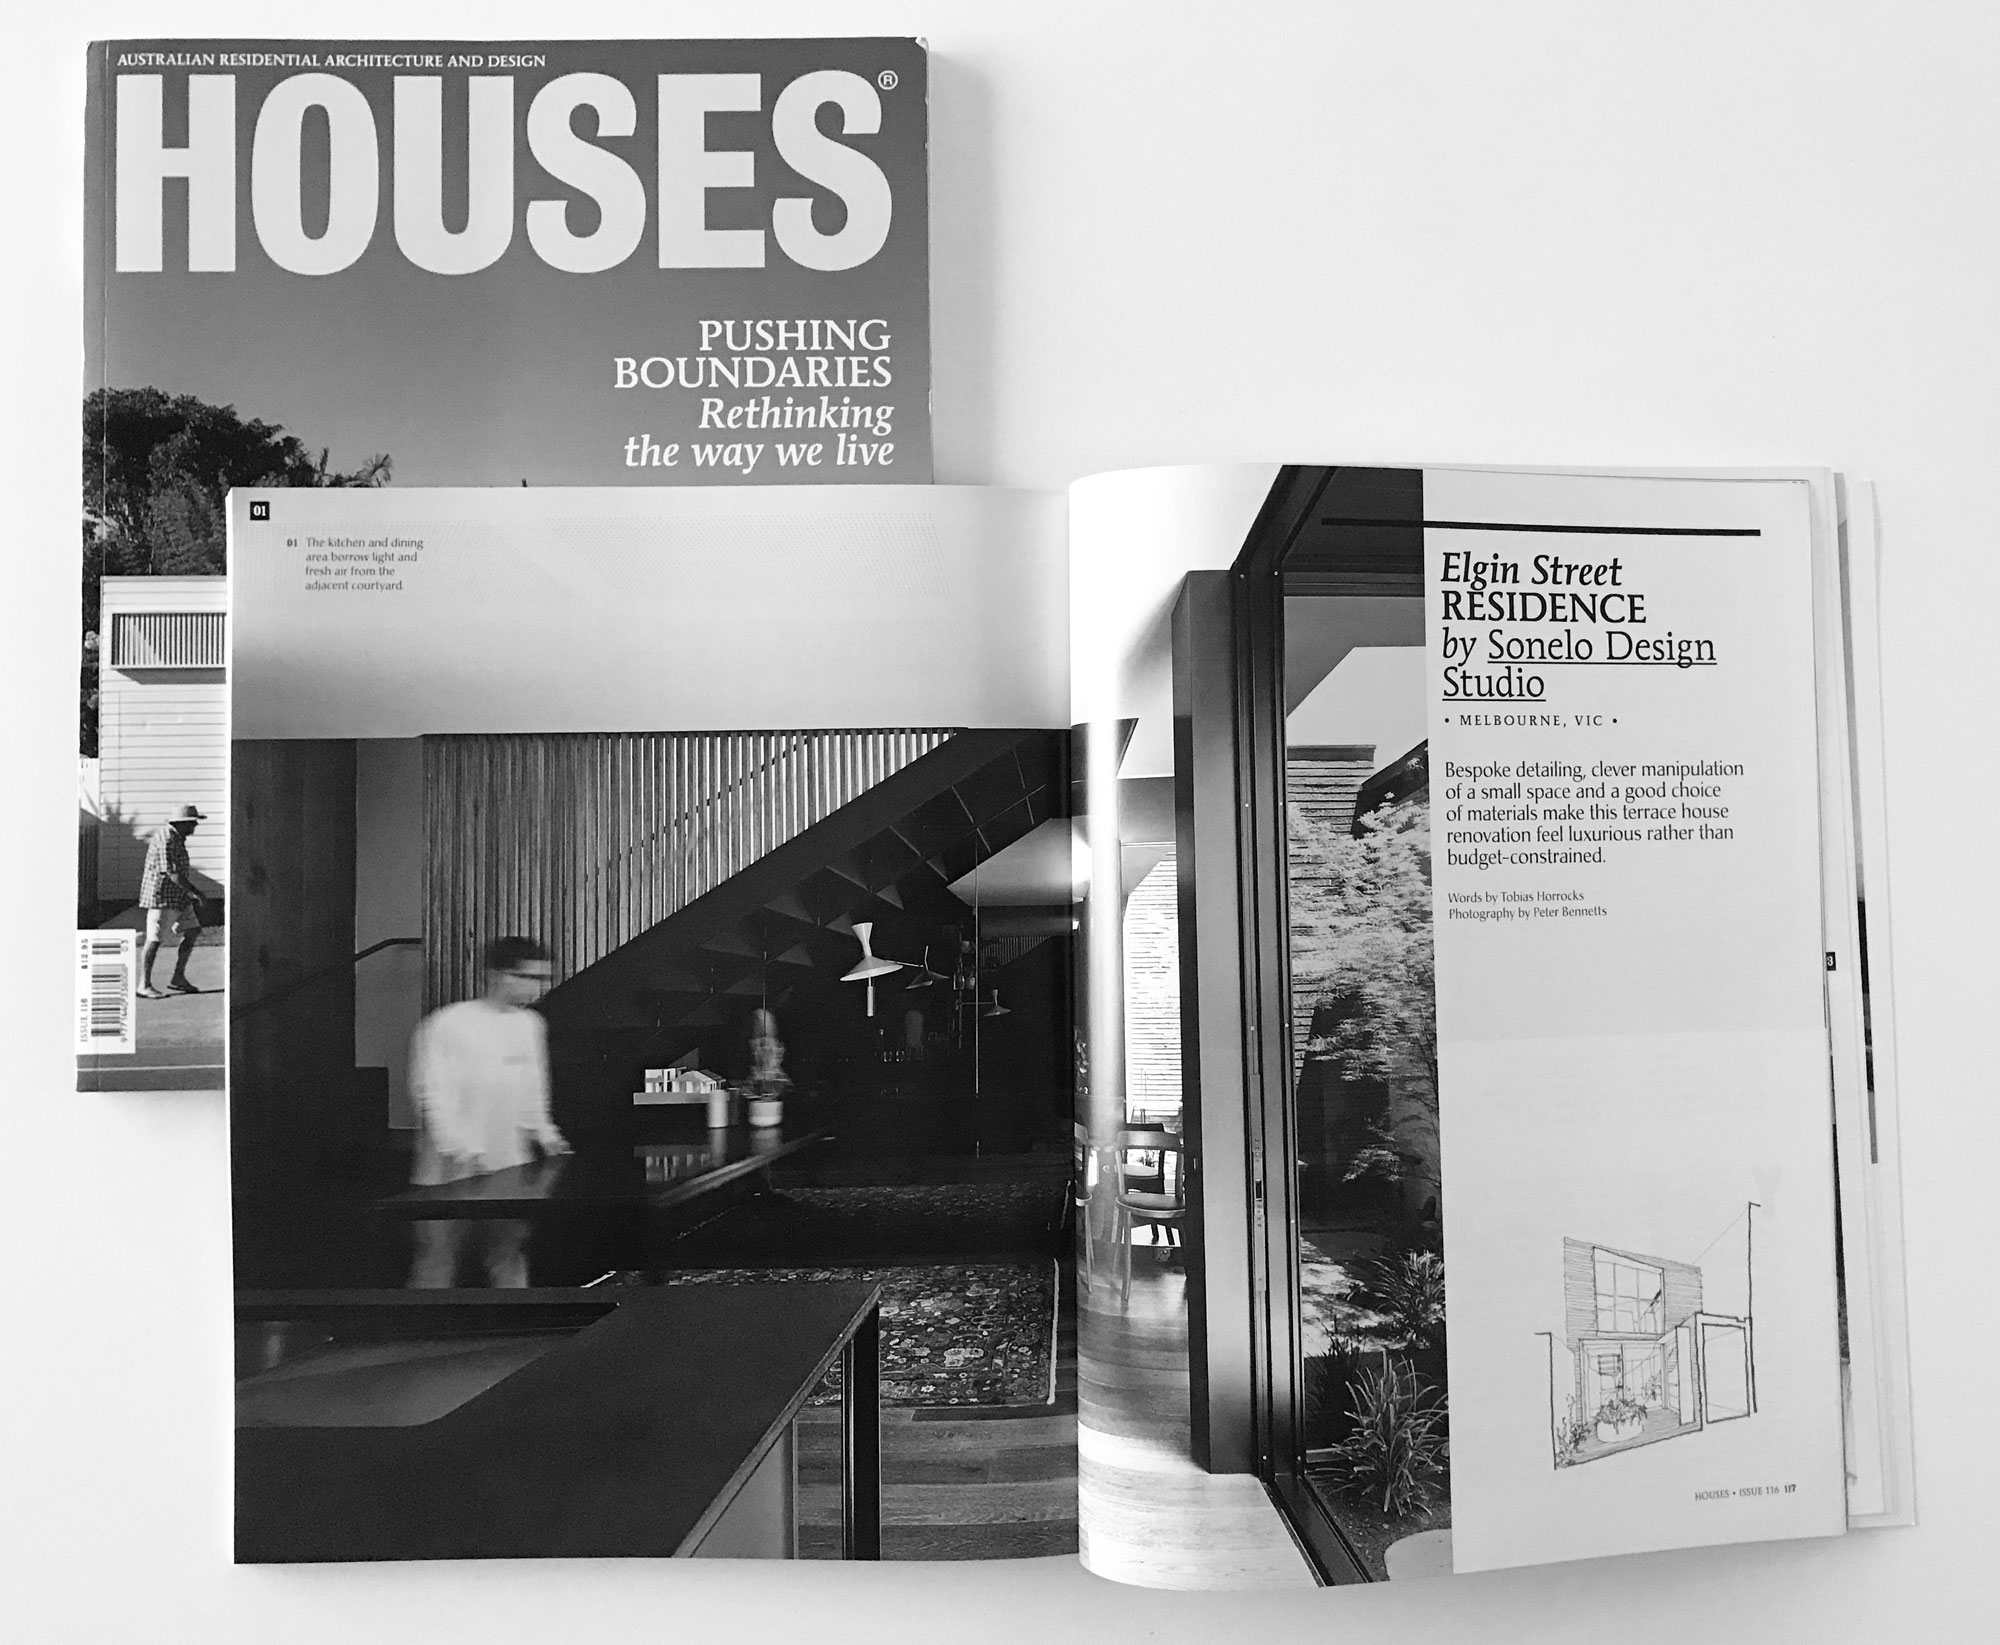 _HOUSES Issue 116, Jun 2017